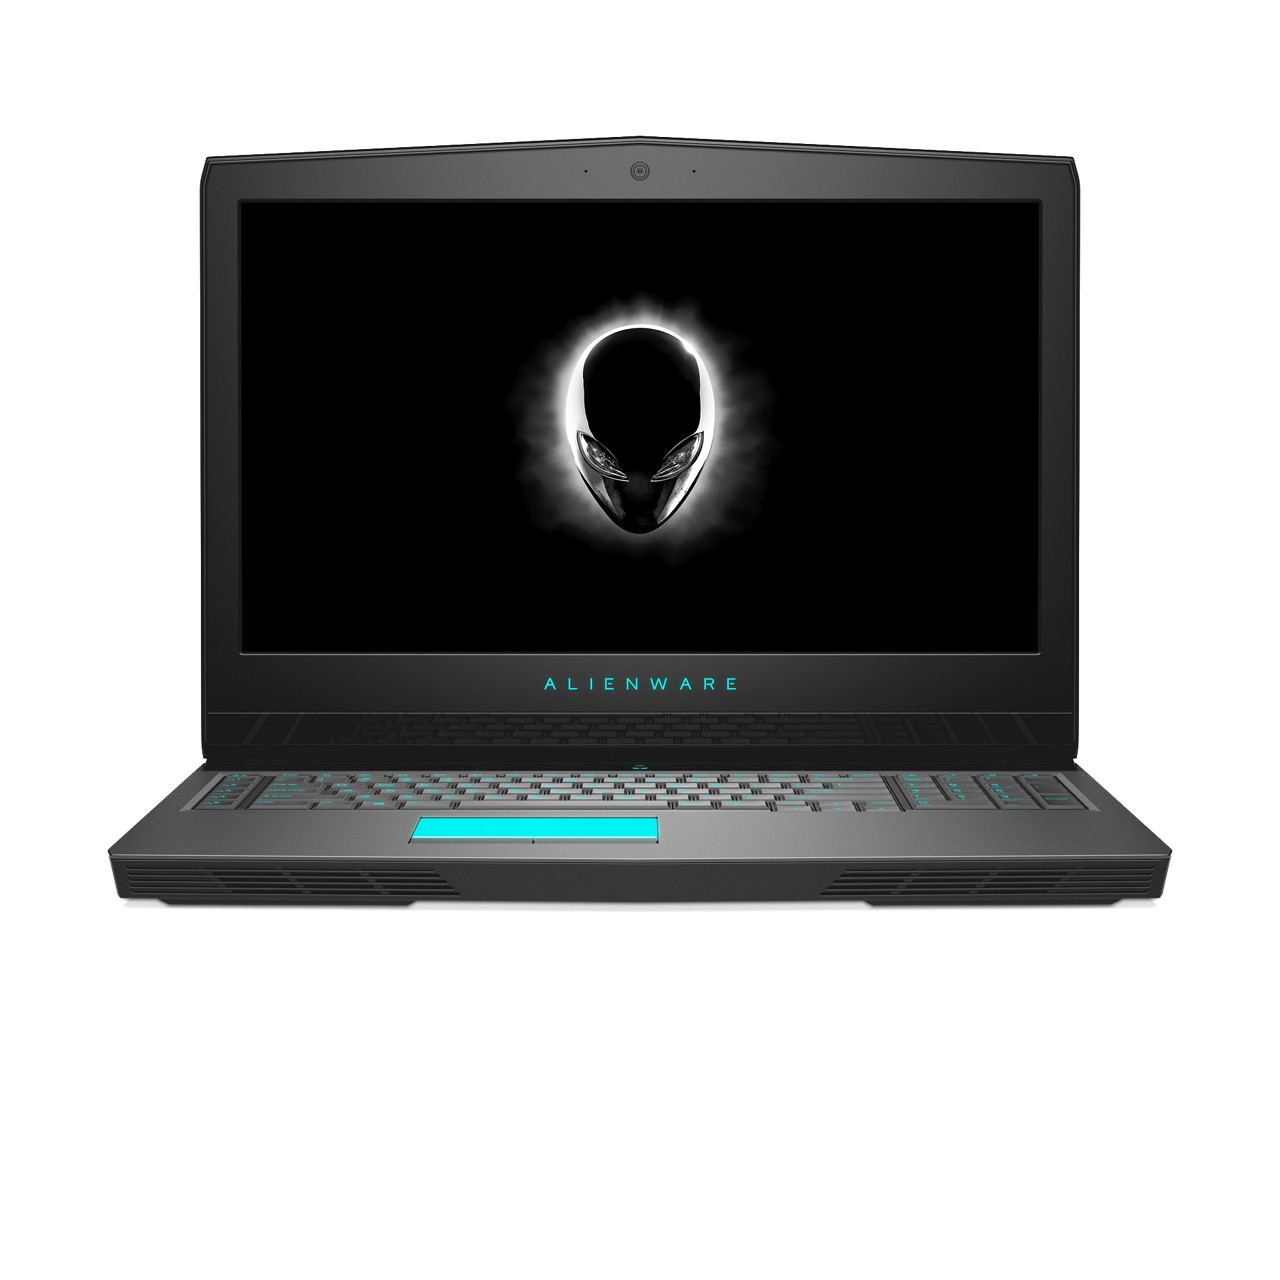 Alienware R5 17 Inch Gaming Laptop i9-8950HK 8th Gen 2.9Ghz/32GB/1TB+1TB/Nvidia Geforce GTX 1080 8GB GDDR5/17.3 Inch/Windows 10